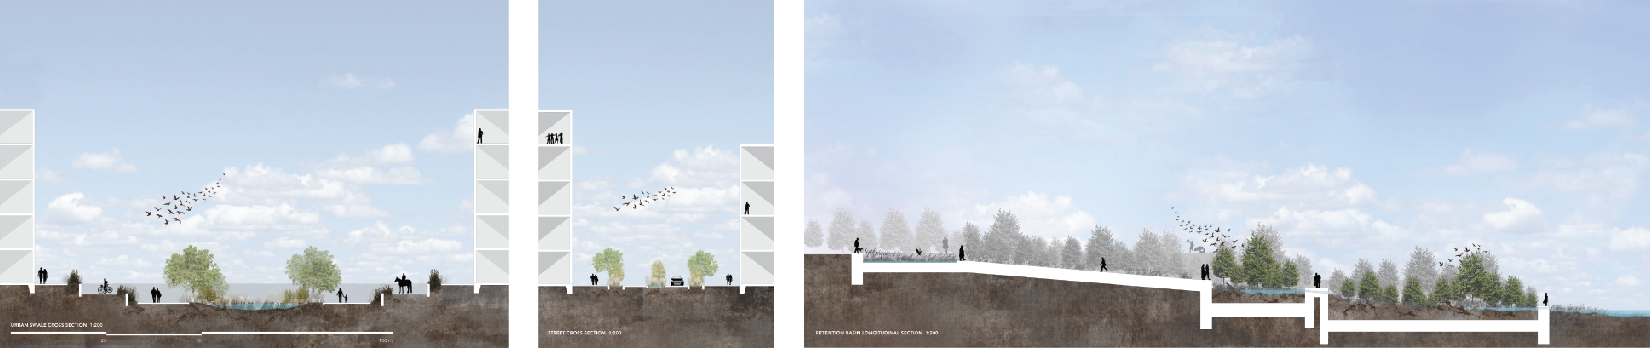 Various Cross and Longitudinal Sections showing the different urban conditions and the rain gardens and swales